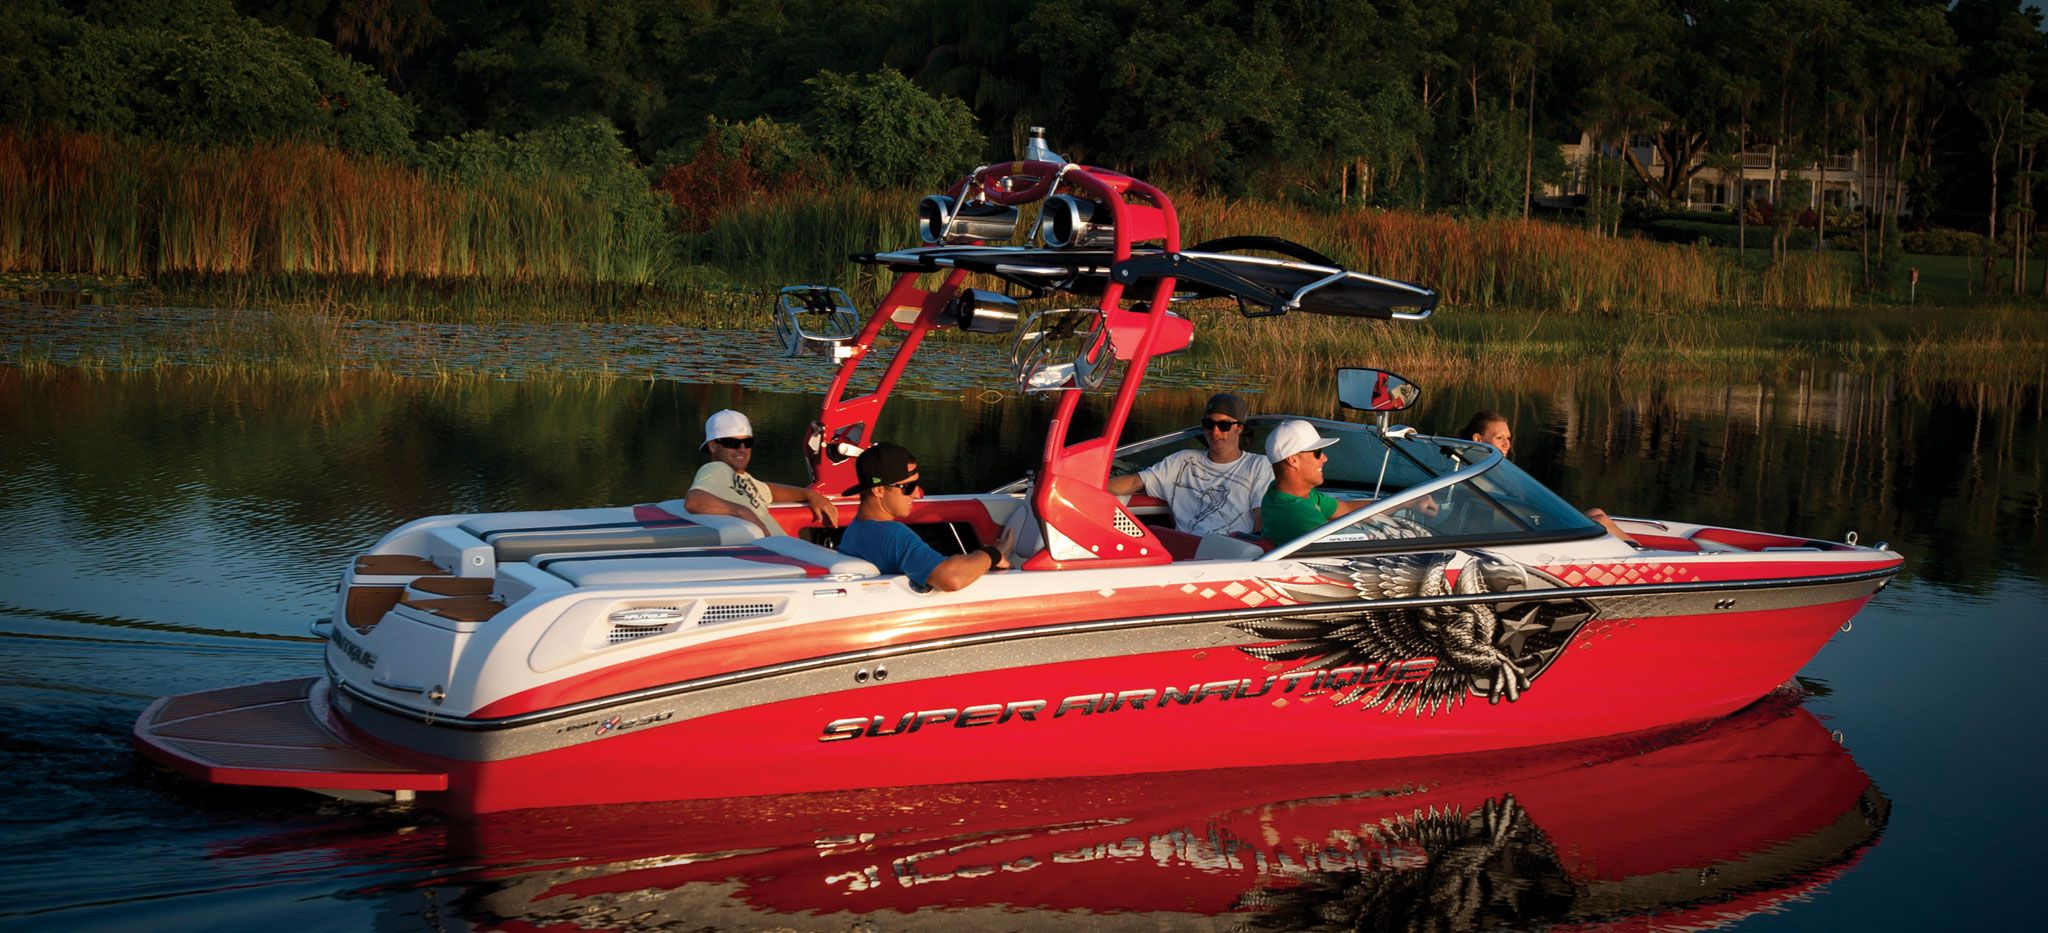 Super Air Nautique 230 2012 Wakeboard boats, Ski boats